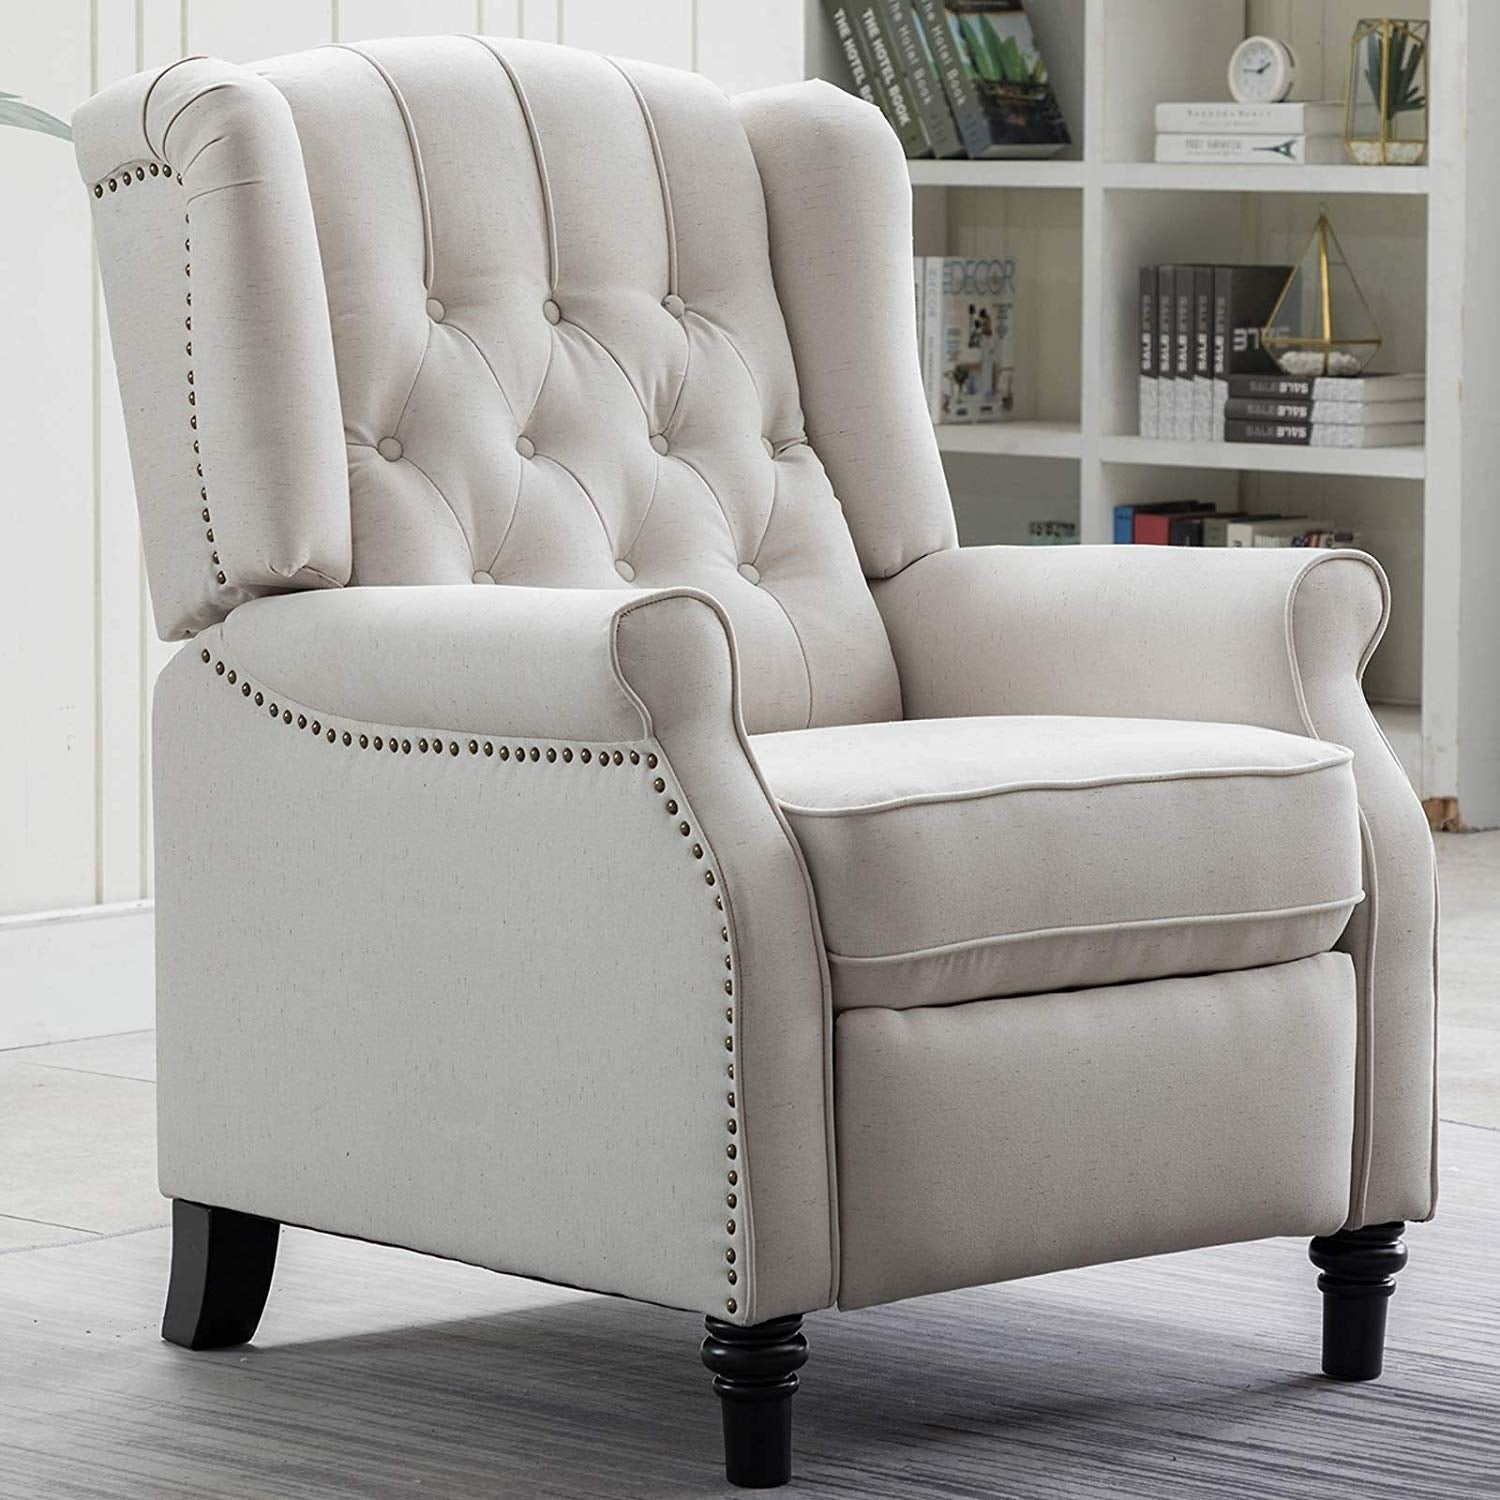 Elizabeth Fabric Arm Chair Recliner with Tufted Back, Push Back Recliner  Chair for Living Room